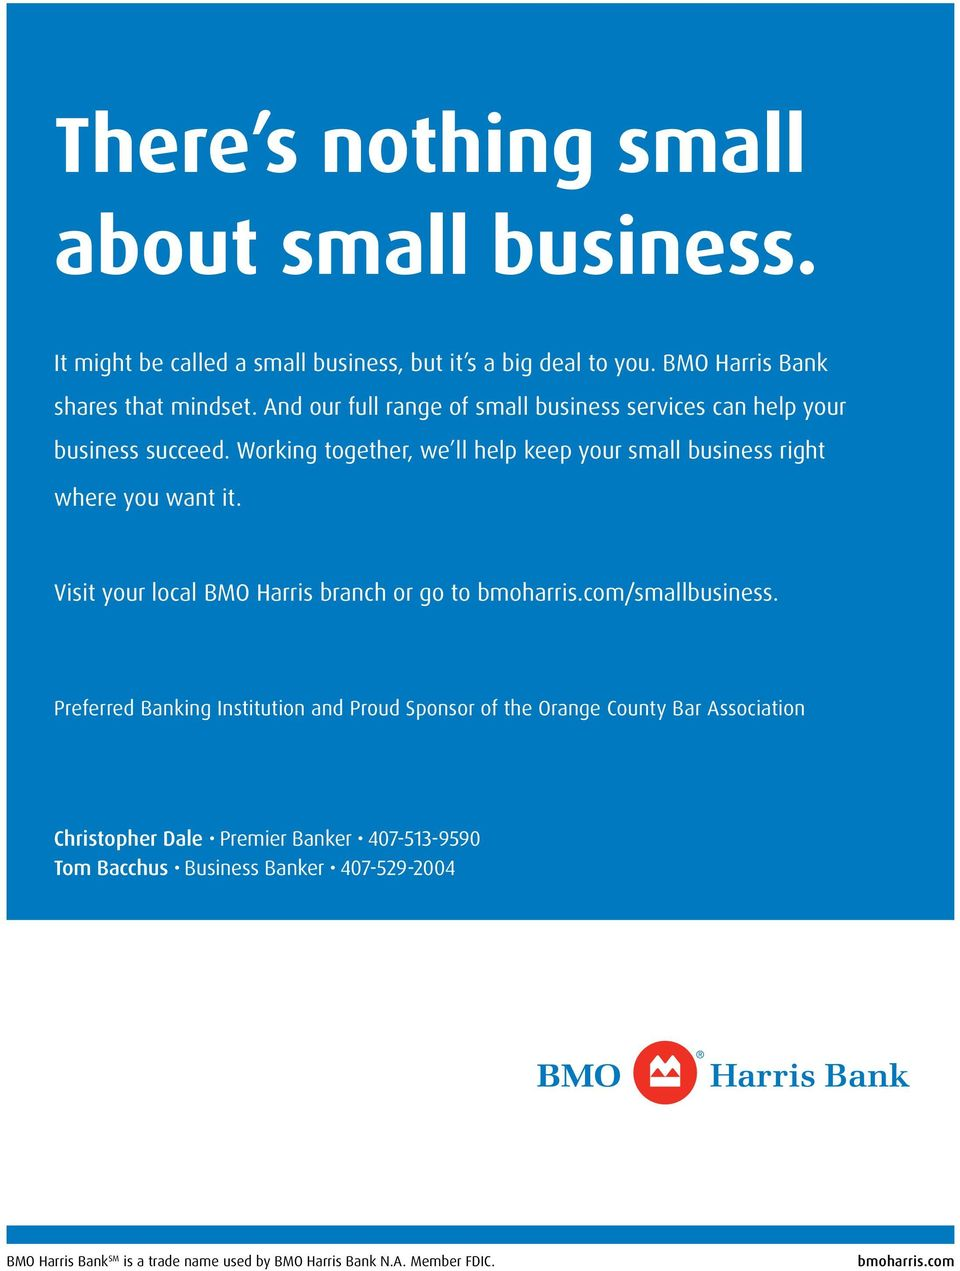 Visit your local BMO Harris branch or go to bmoharris.com/smallbusiness.